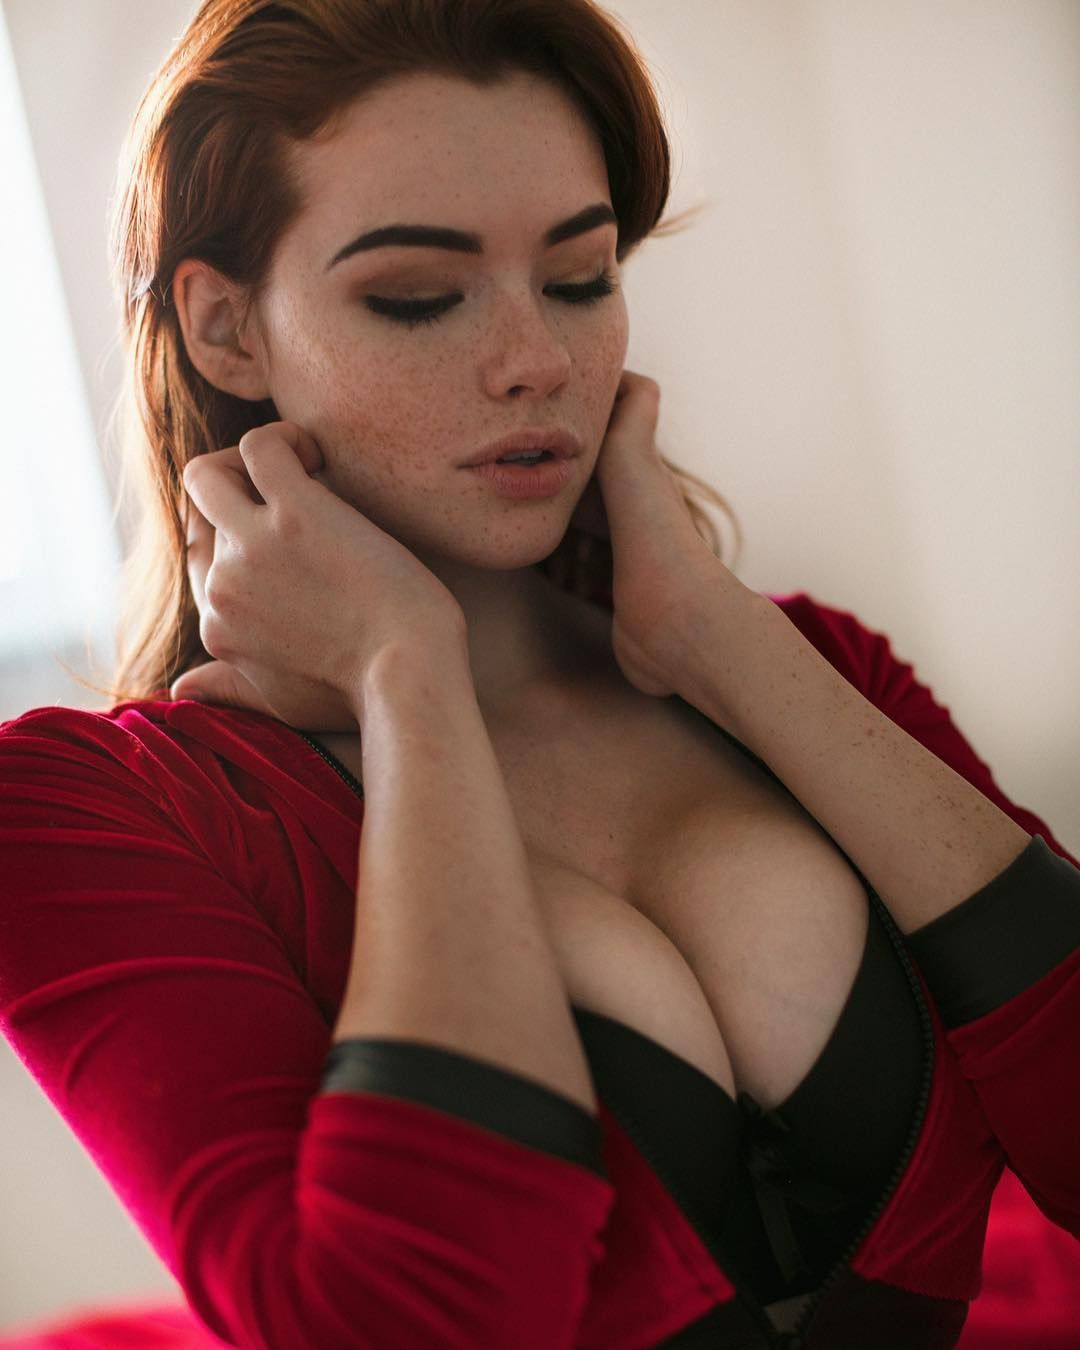 Cleavage Lizzie Kelly nude (49 photos), Sexy